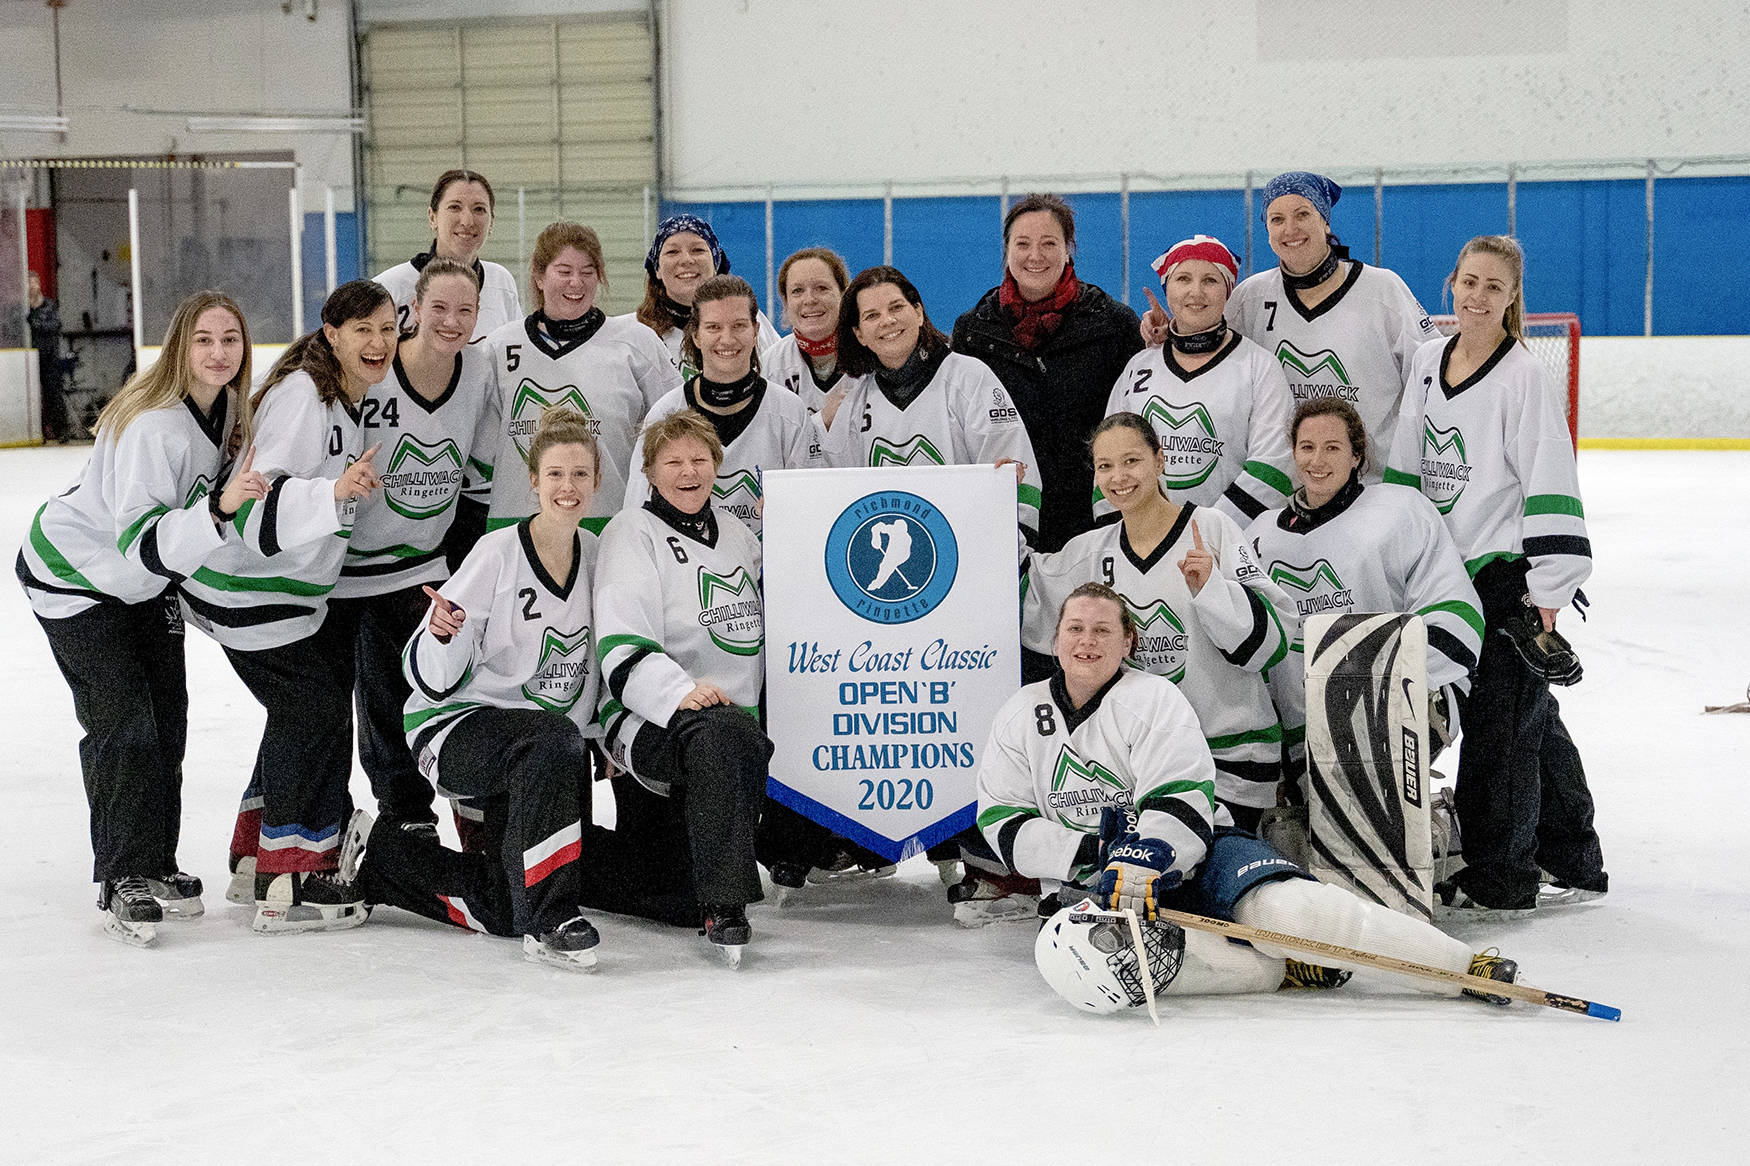 Chilliwack ringette club earns historic win at Richmond's West Coast Classic